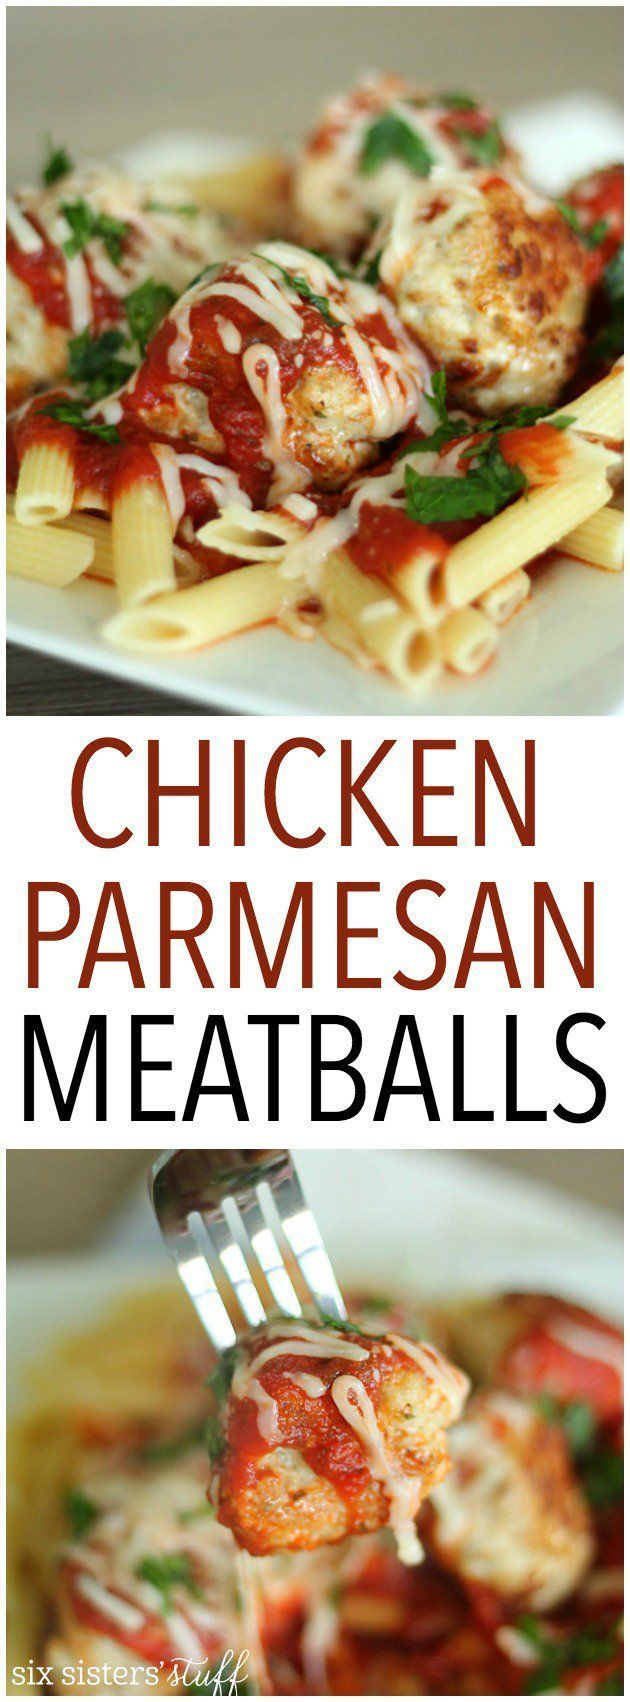 Chicken Parmesan Meatballs Recipe from SixSistersStuff.com | Chicken Meatball Recipe | Easy Dinner Ideas | Meals for Company